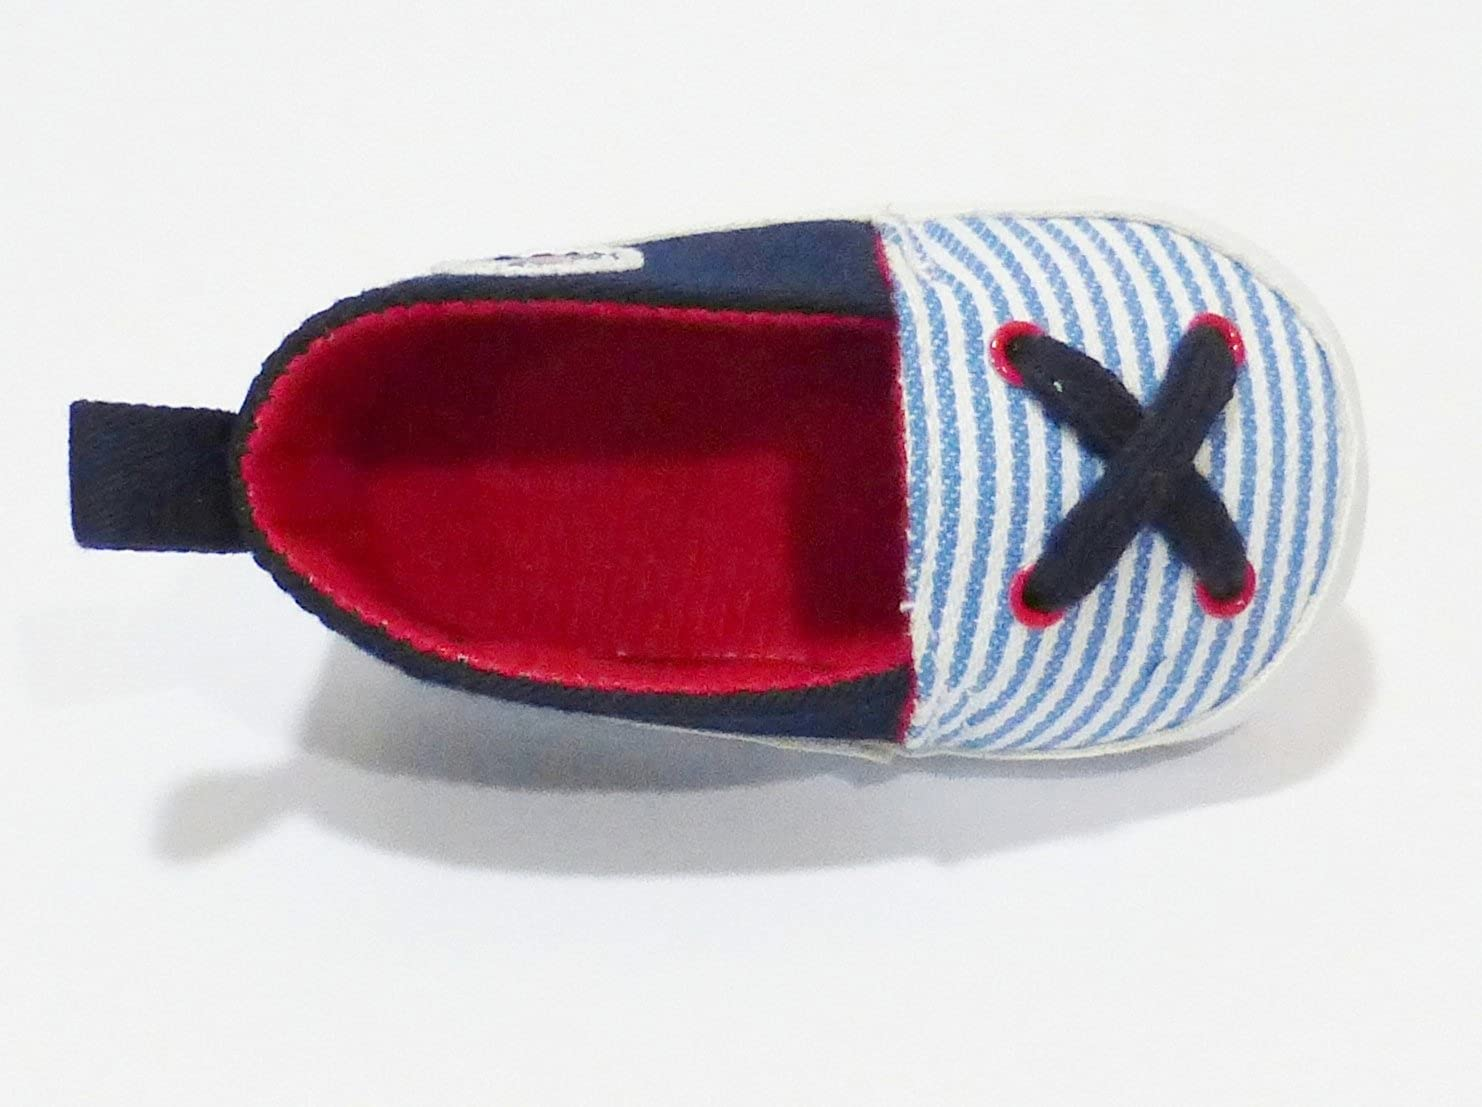 3.75 Insole Cotton Twill Slip on Shoes with Blue Stripes 3-6 Months